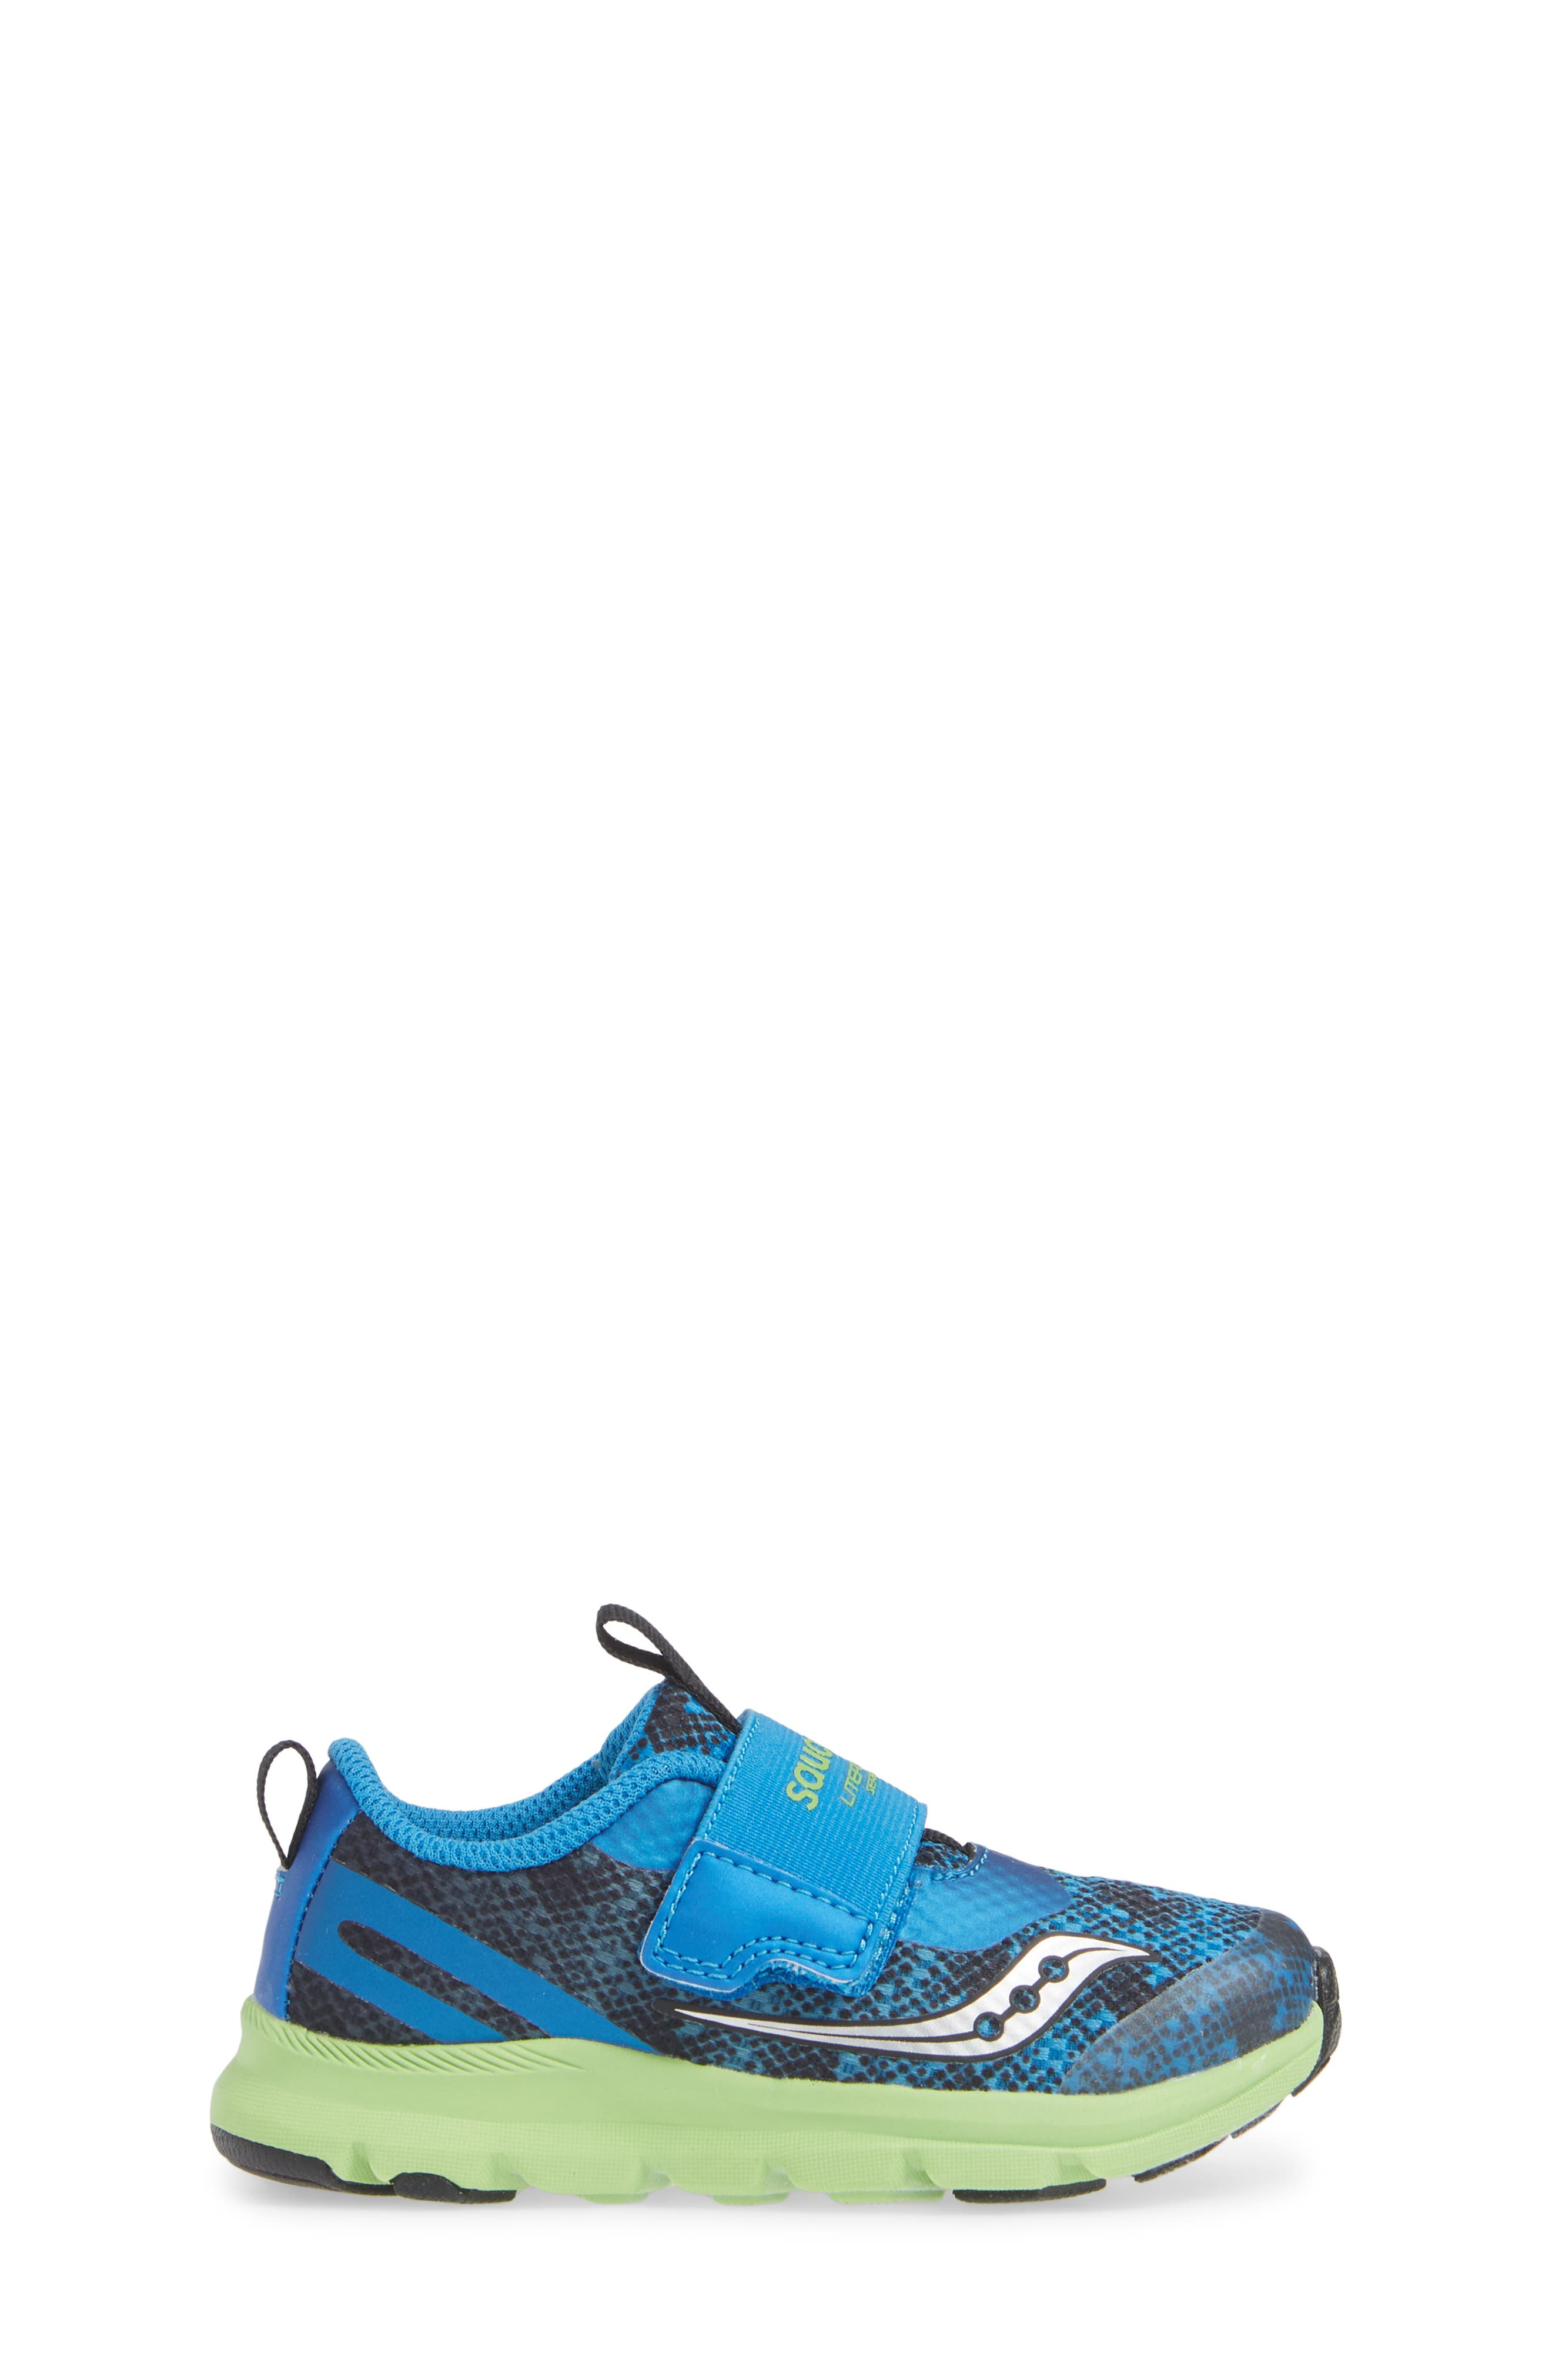 SAUCONY, Baby Liteform Sneaker, Alternate thumbnail 3, color, BLUE/ GREEN